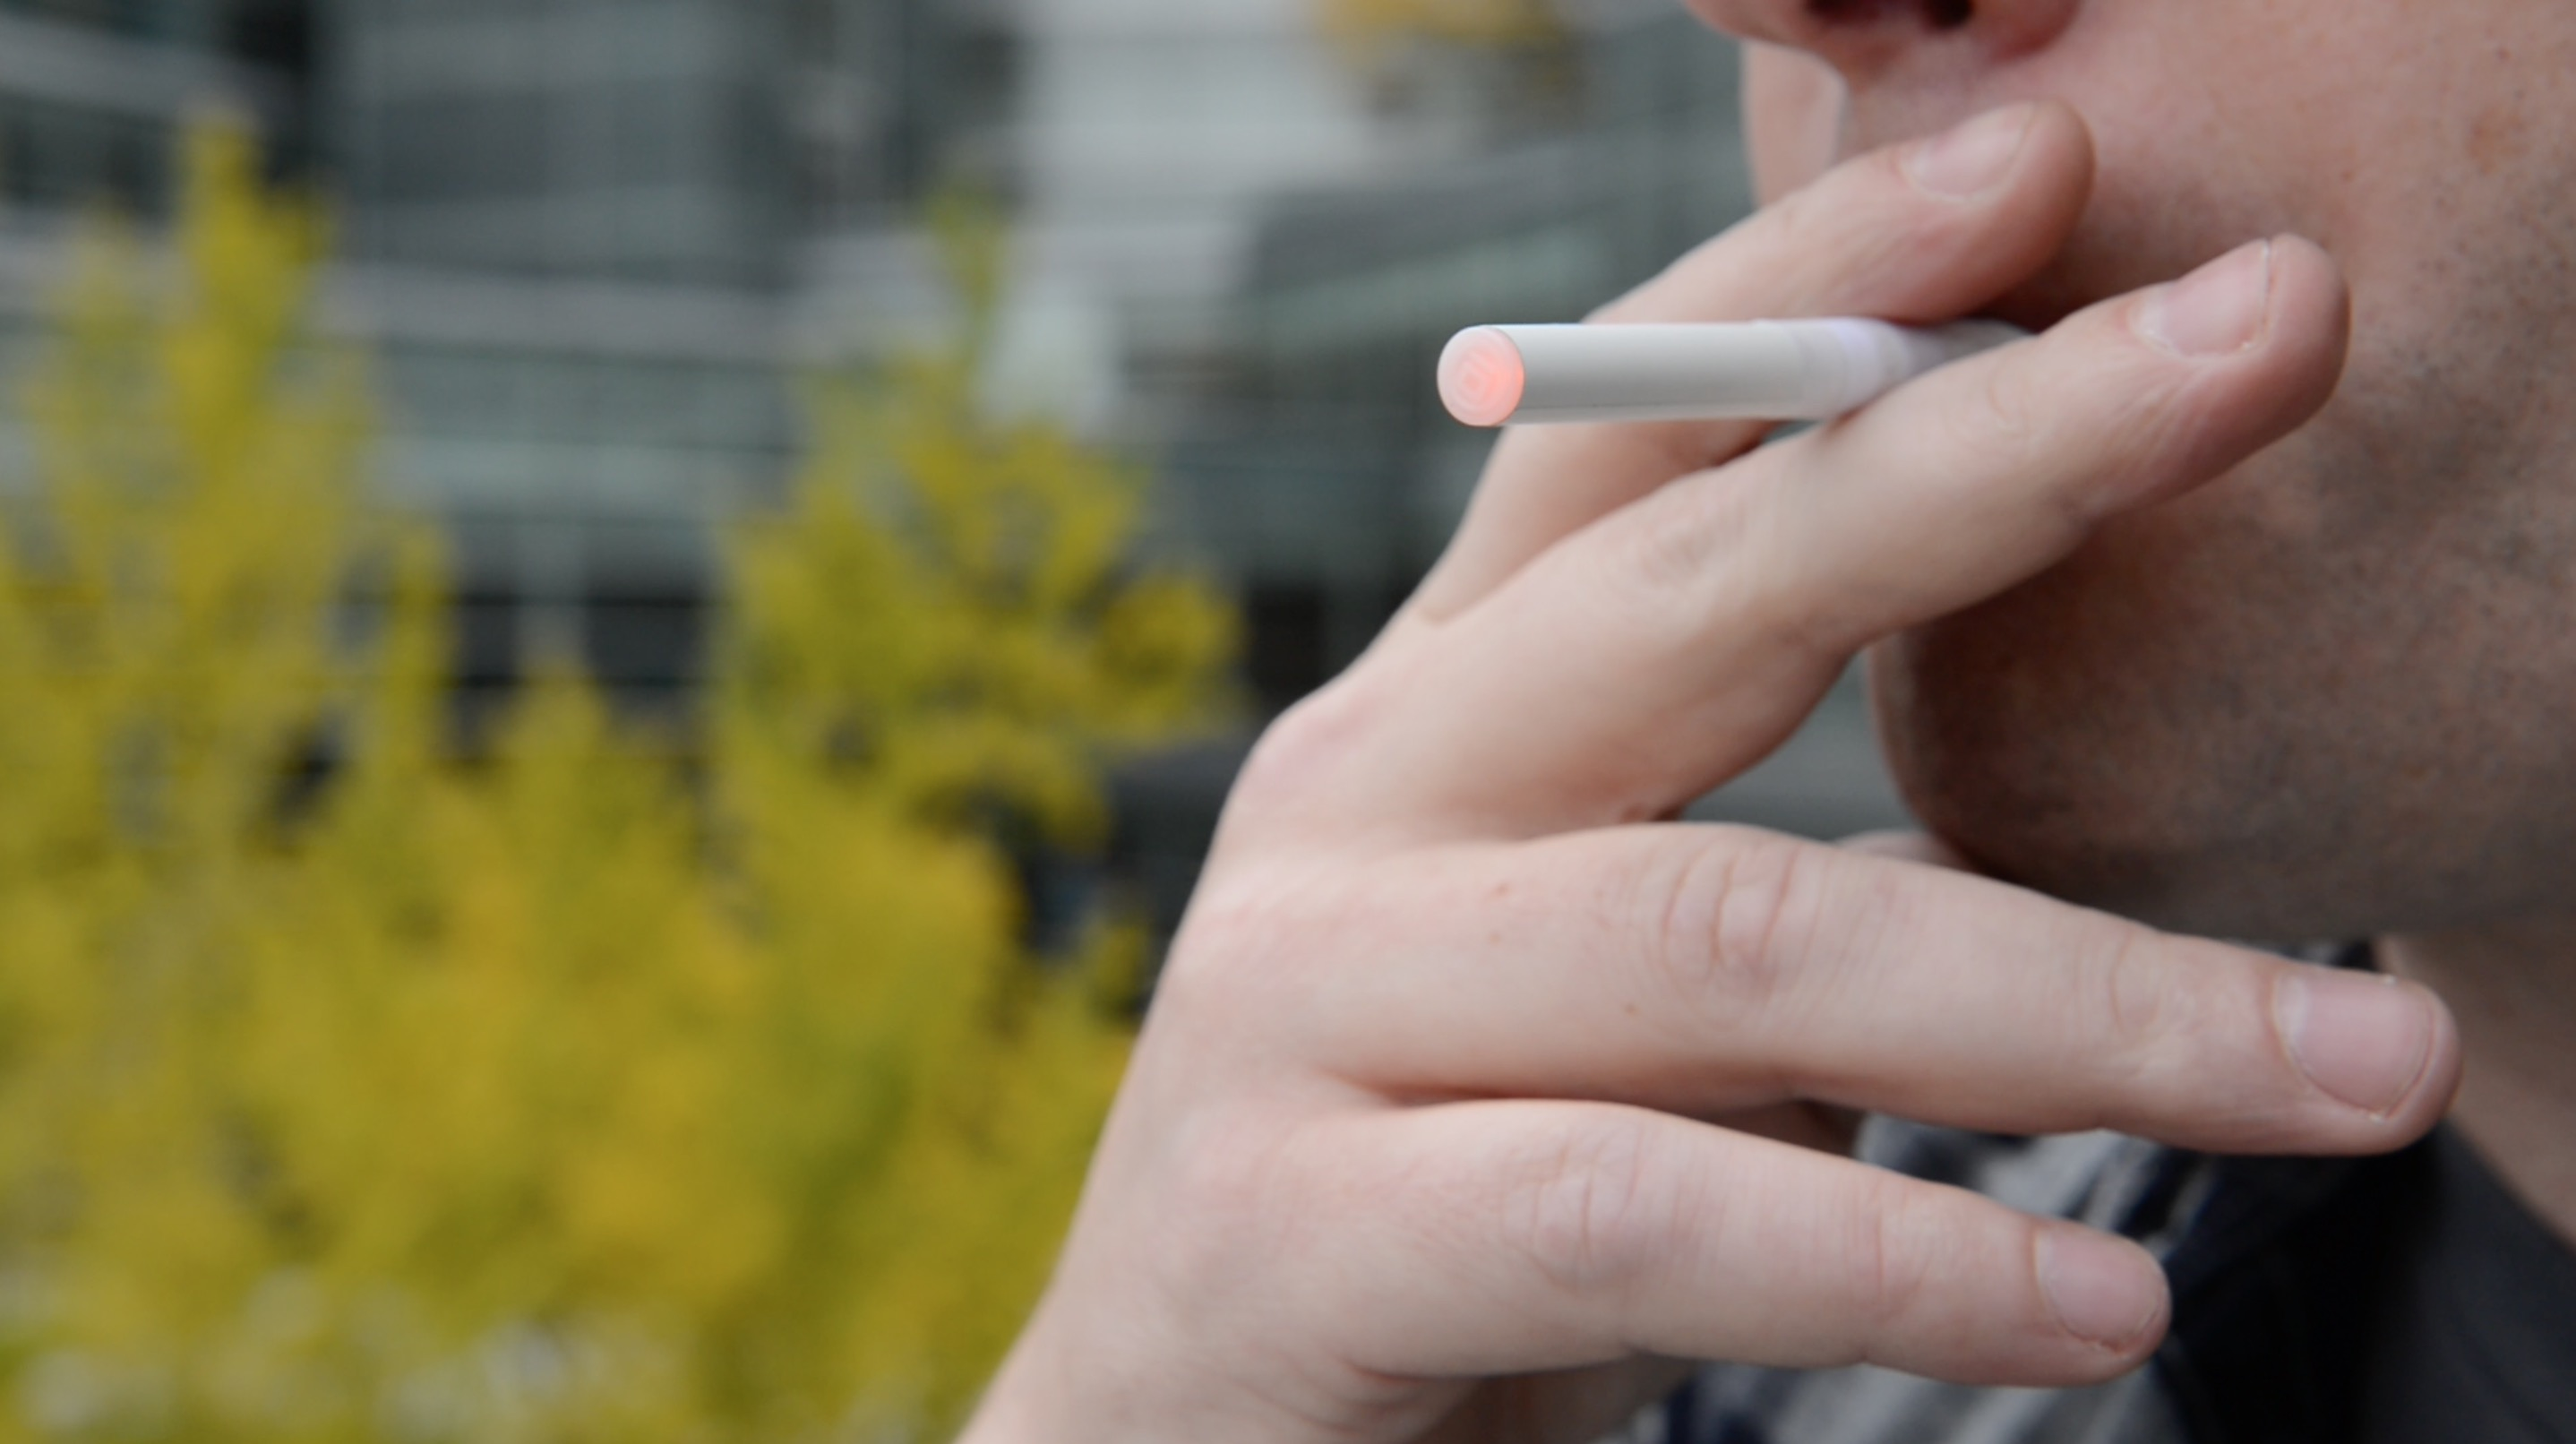 Cheap Benson Hedges cigarettes in England